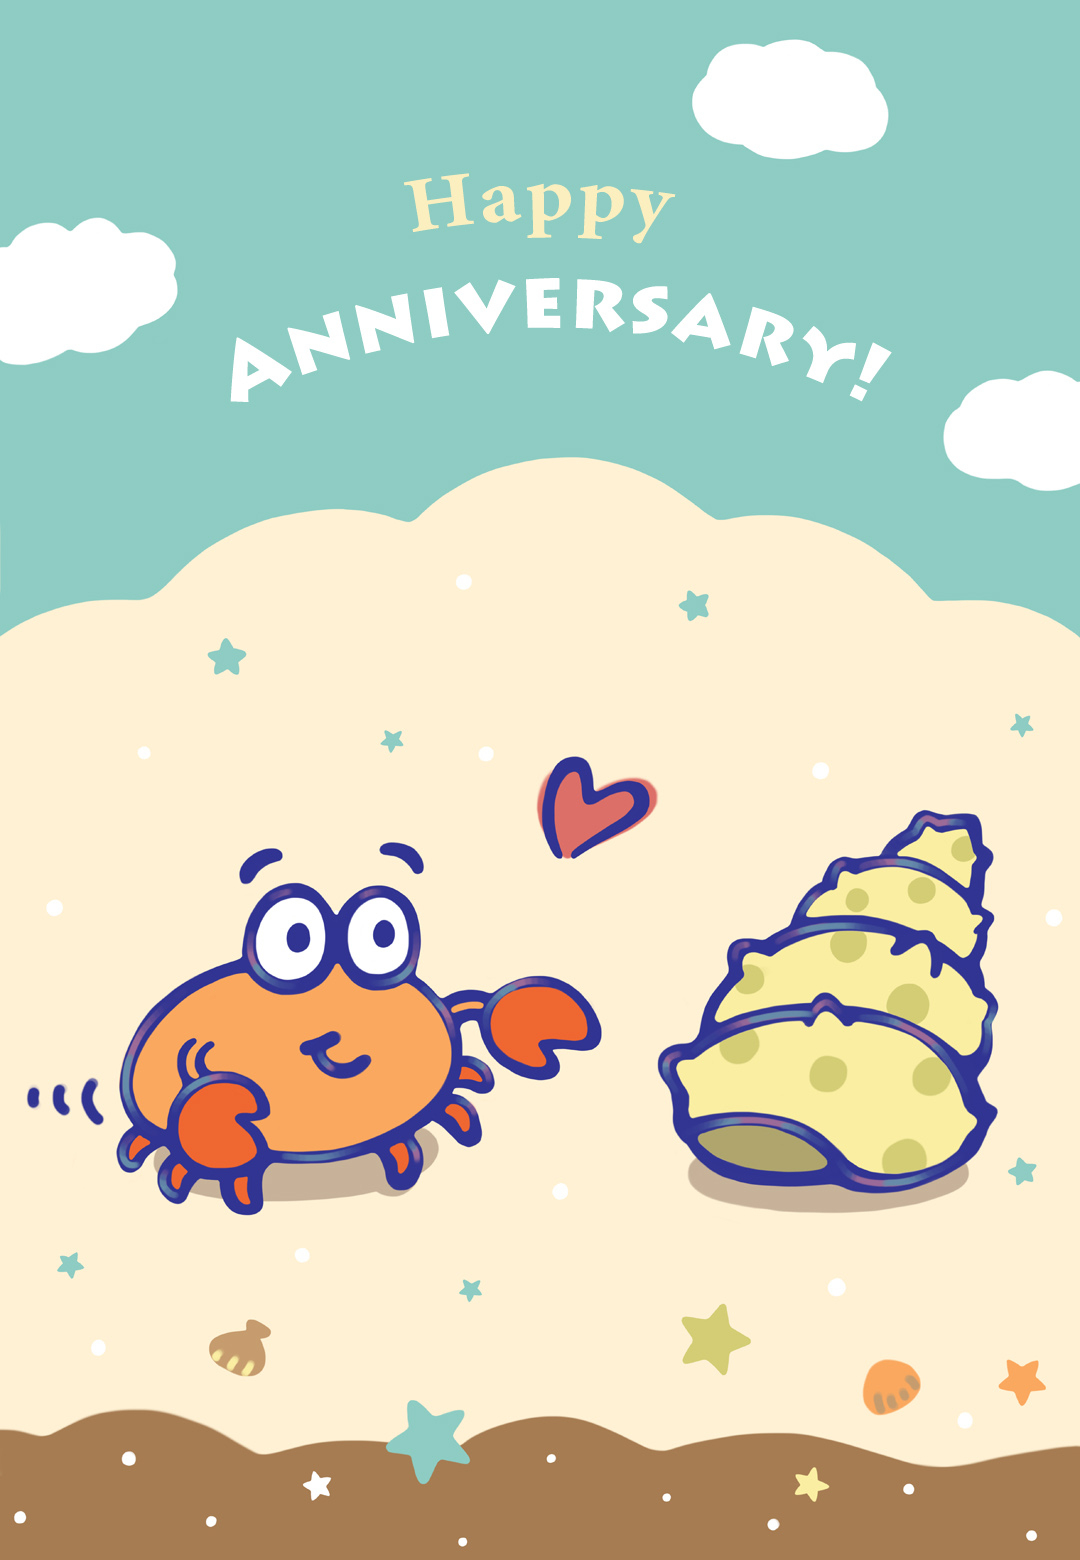 When I Found You - Free Happy Anniversary Card | Greetings Island - Free Printable Anniversary Cards